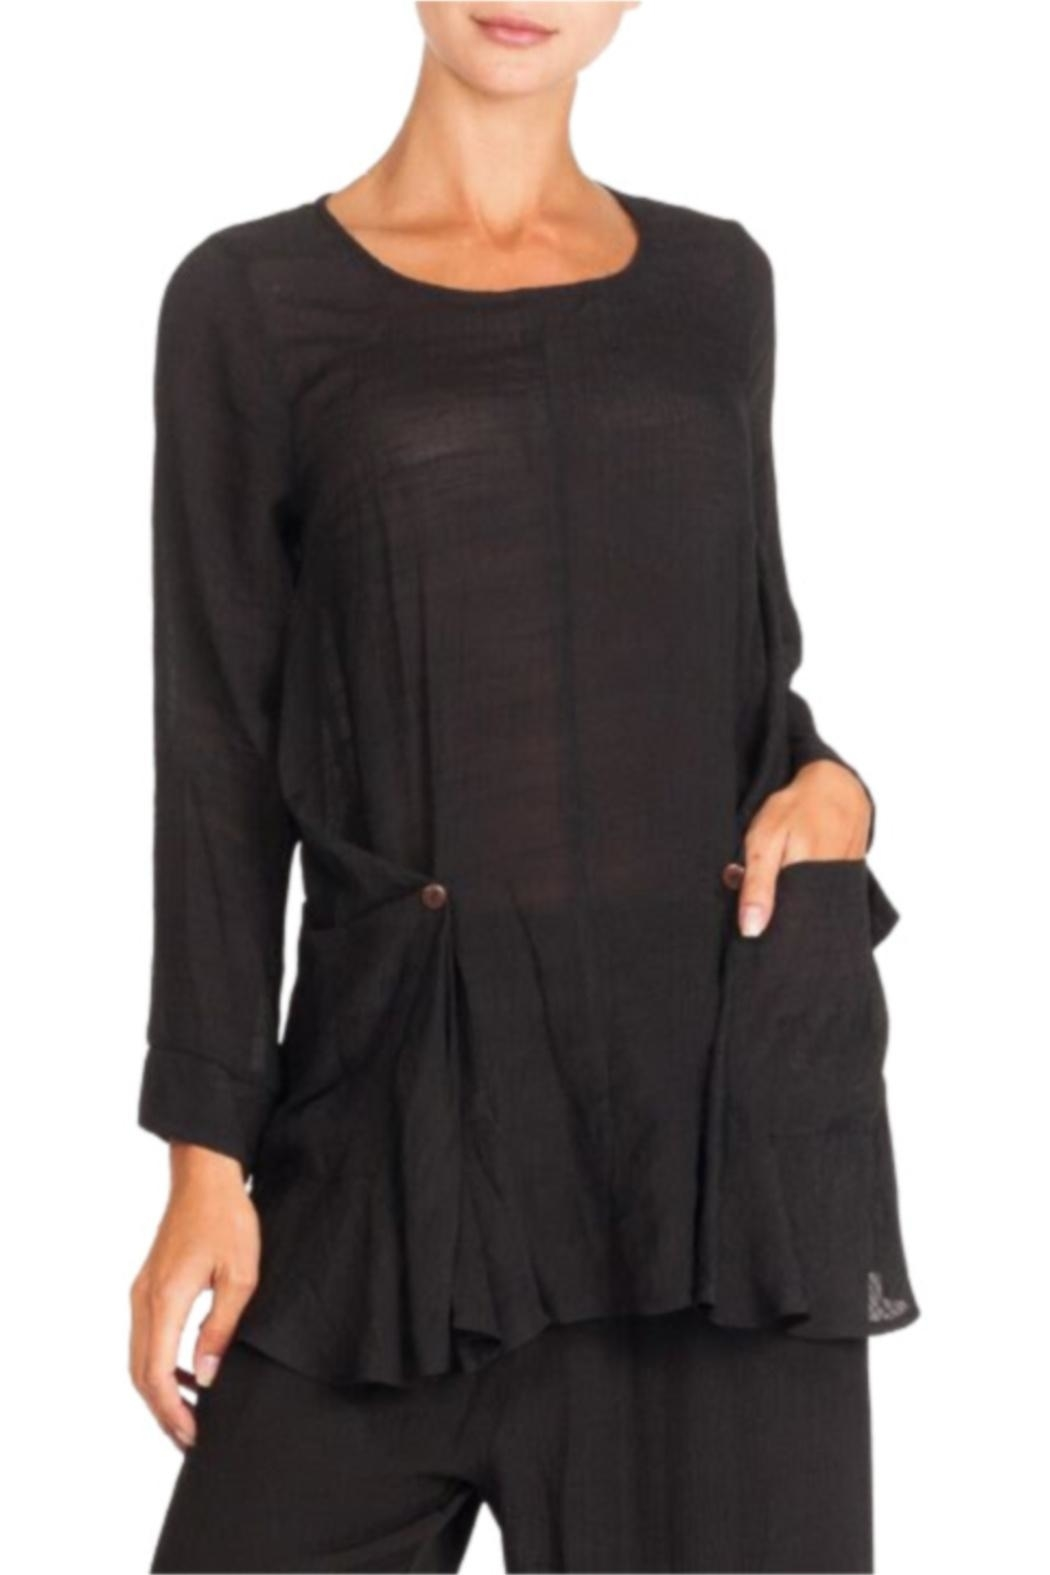 Alison Sheri Black  Long Sleeve Tunic - Main Image